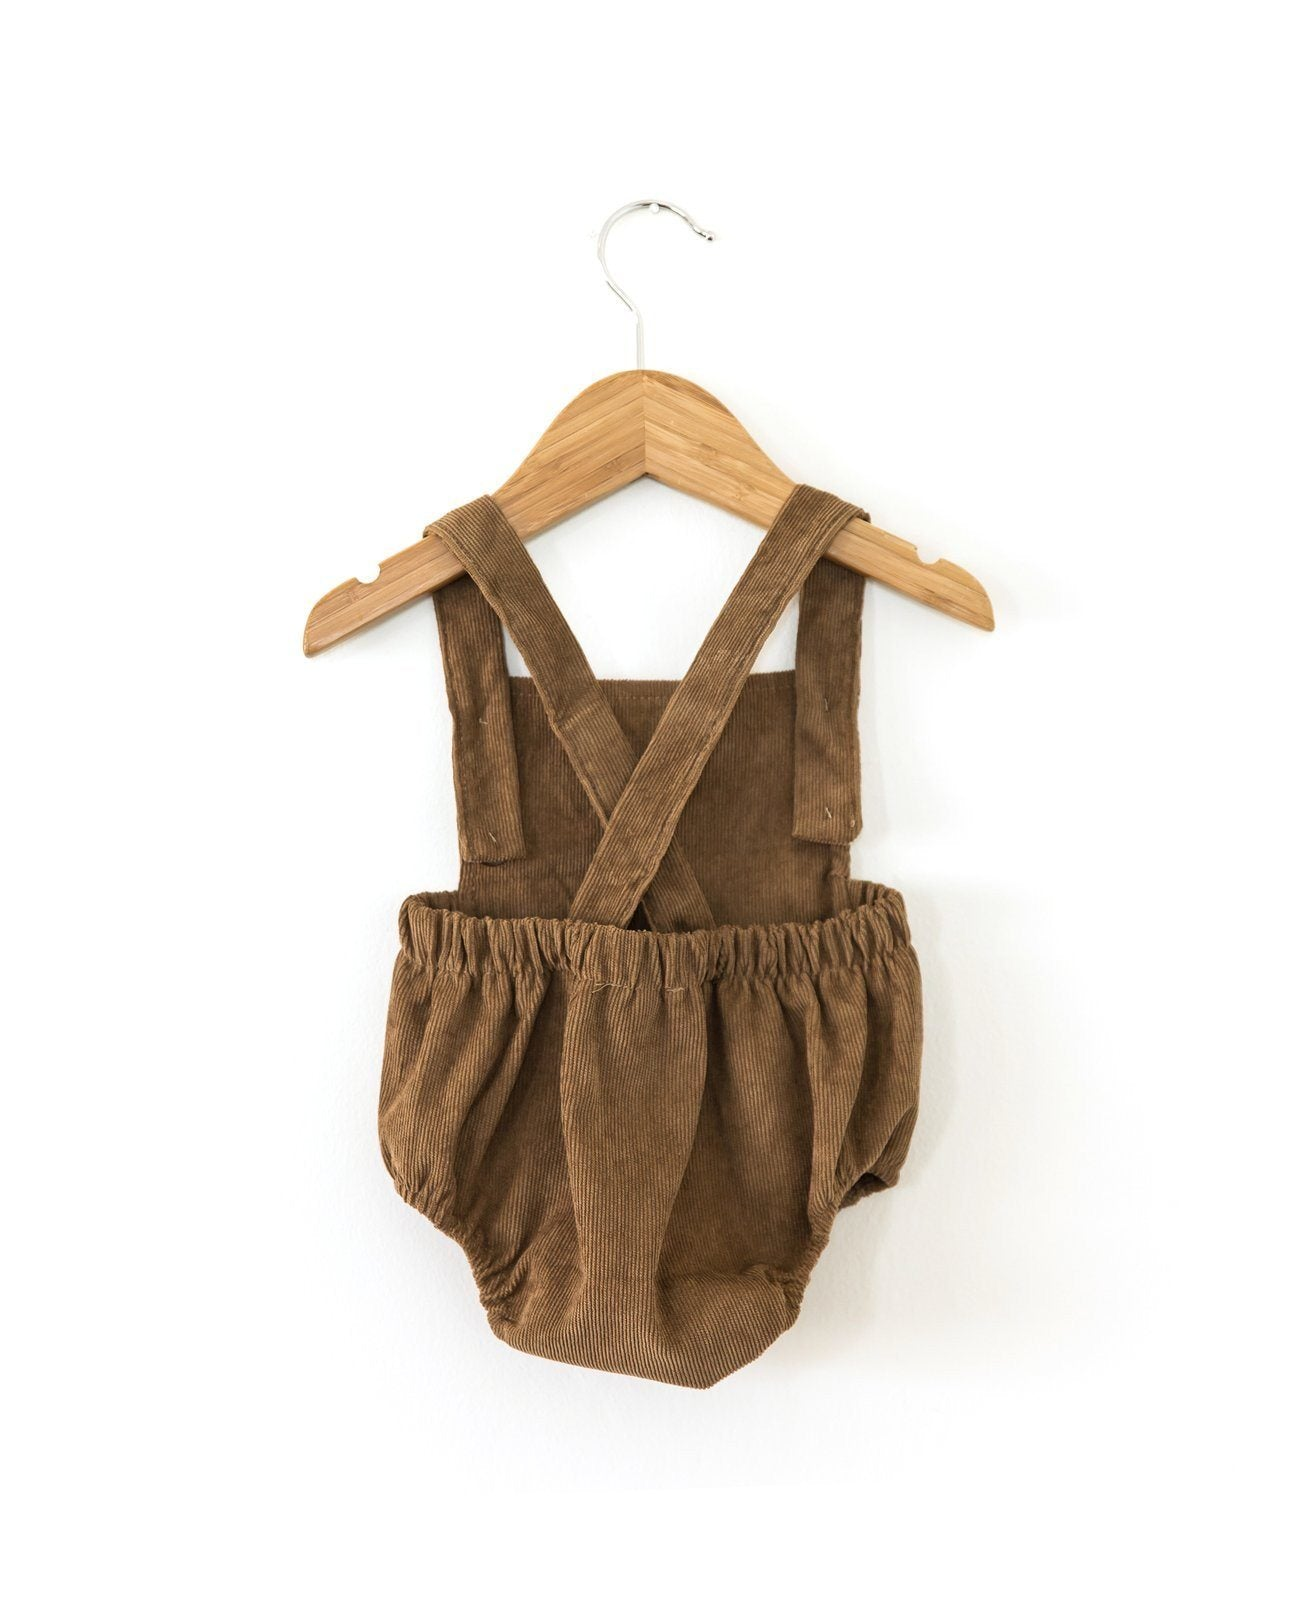 EDIT Kobe Cord Romper - Earth INDIGO ATTIC